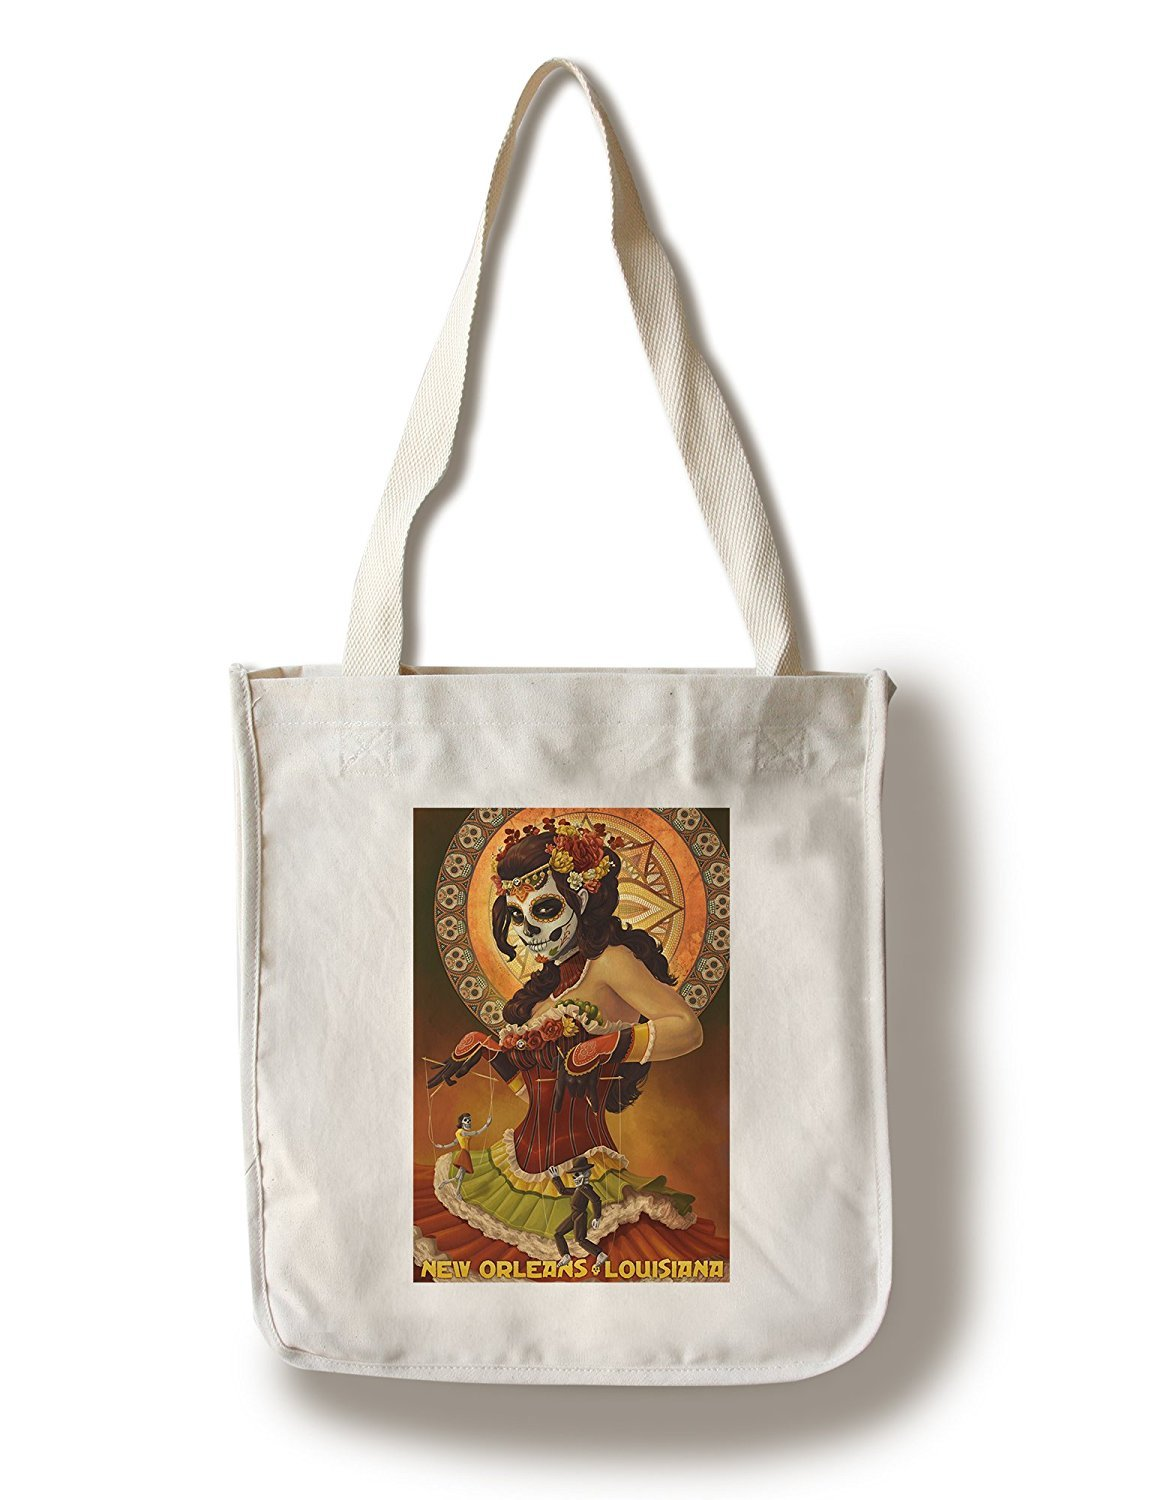 【保存版】 Dia Metal De Los Muertos Tote Marionettes B01841R3YC – ニューオーリンズ、ルイジアナ州 12 x 18 Metal Sign LANT-42785-12x18M B01841R3YC Canvas Tote Bag Canvas Tote Bag, 東成区:d21d1293 --- arianechie.dominiotemporario.com